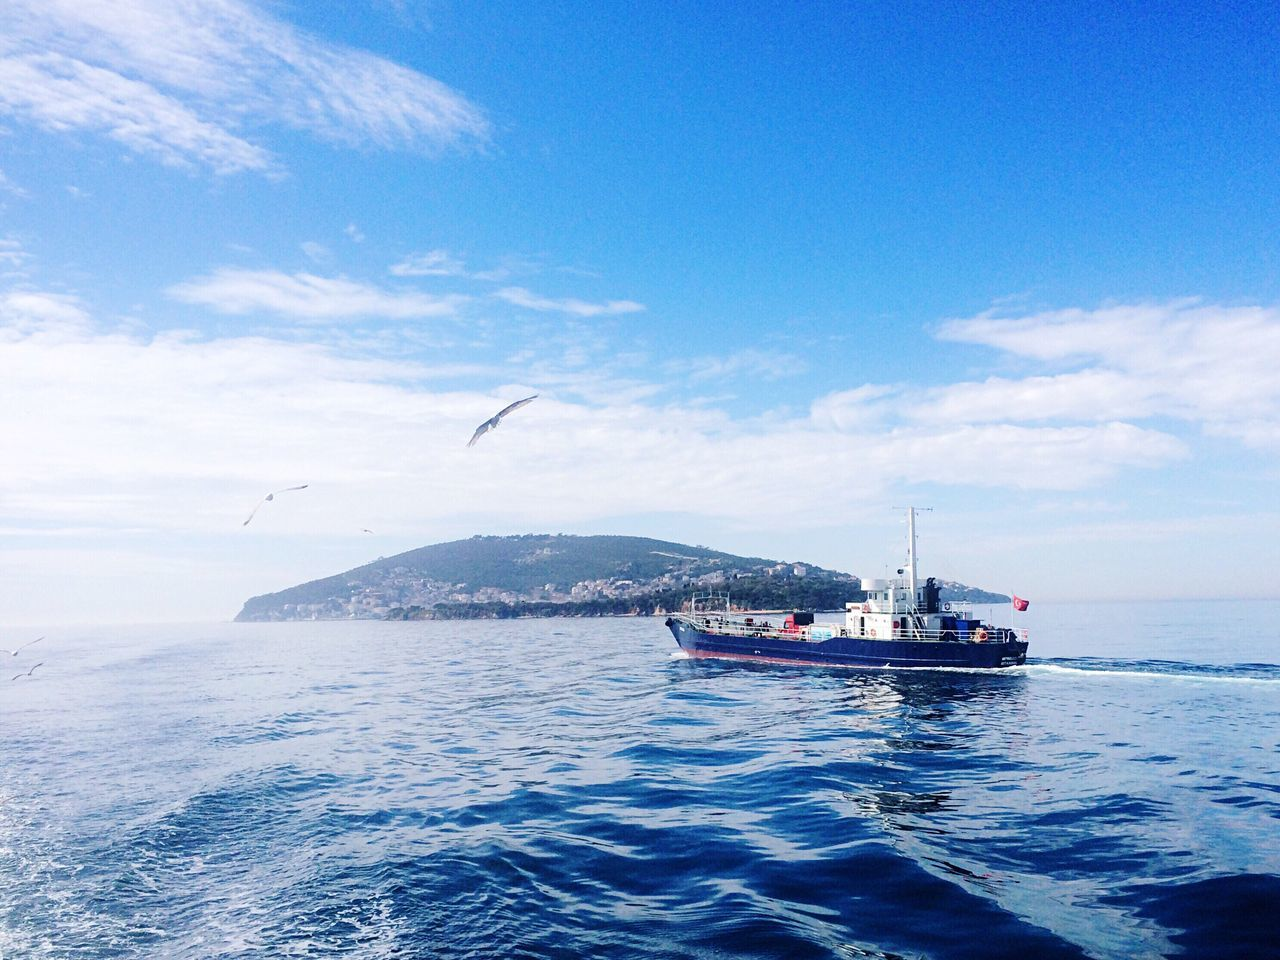 Sea Blue Nautical Vessel Water Transportation Sky Outdoors Beauty In Nature Nature No People Day Mermaid Princeislands Turkey ♡ Istanbul Island Beauty In Nature Scenics Mode Of Transport Cloud - Sky Nature EyeEmNewHere